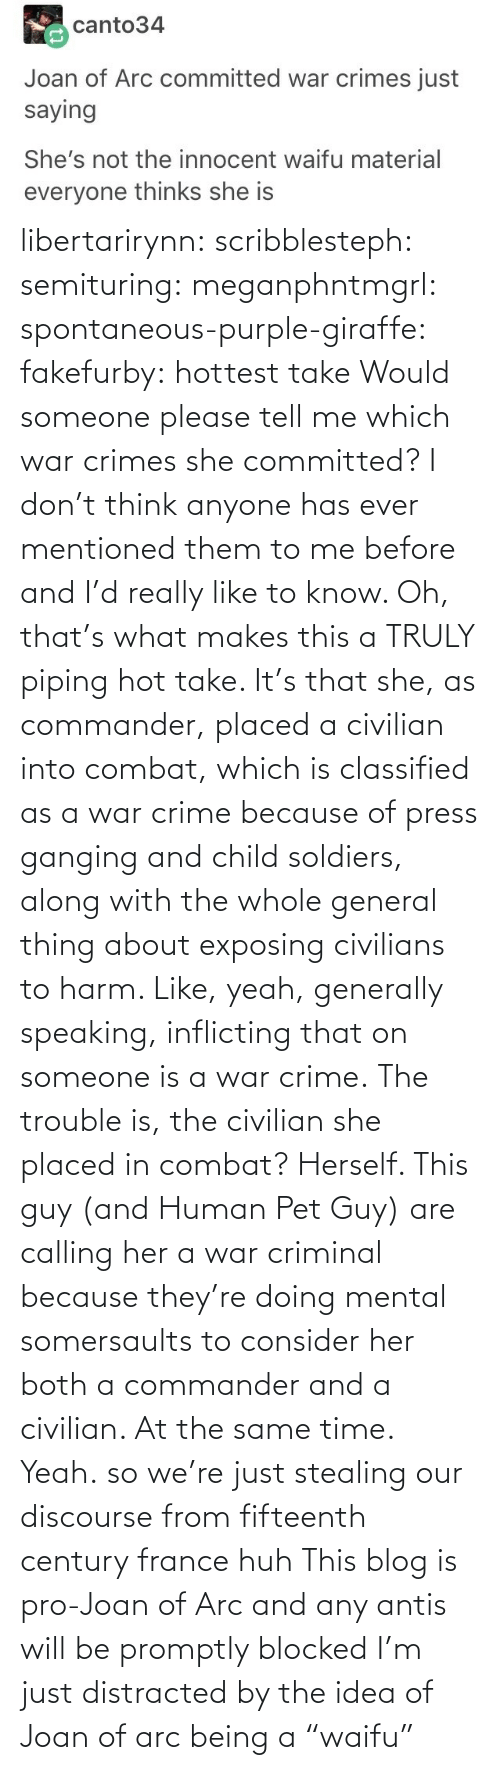 "Oh: libertarirynn: scribblesteph:  semituring:  meganphntmgrl:  spontaneous-purple-giraffe:   fakefurby: hottest take  Would someone please tell me which war crimes she committed? I don't think anyone has ever mentioned them to me before and I'd really like to know.    Oh, that's what makes this a TRULY piping hot take. It's that she, as commander, placed a civilian into combat, which is classified as a war crime because of press ganging and child soldiers, along with the whole general thing about exposing civilians to harm. Like, yeah, generally speaking, inflicting that on someone is a war crime. The trouble is, the civilian she placed in combat? Herself.  This guy (and Human Pet Guy) are calling her a war criminal because they're doing mental somersaults to consider her both a commander and a civilian. At the same time.  Yeah.  so we're just stealing our discourse from fifteenth century france huh   This blog is pro-Joan of Arc and any antis will be promptly blocked   I'm just distracted by the idea of Joan of arc being a ""waifu"""